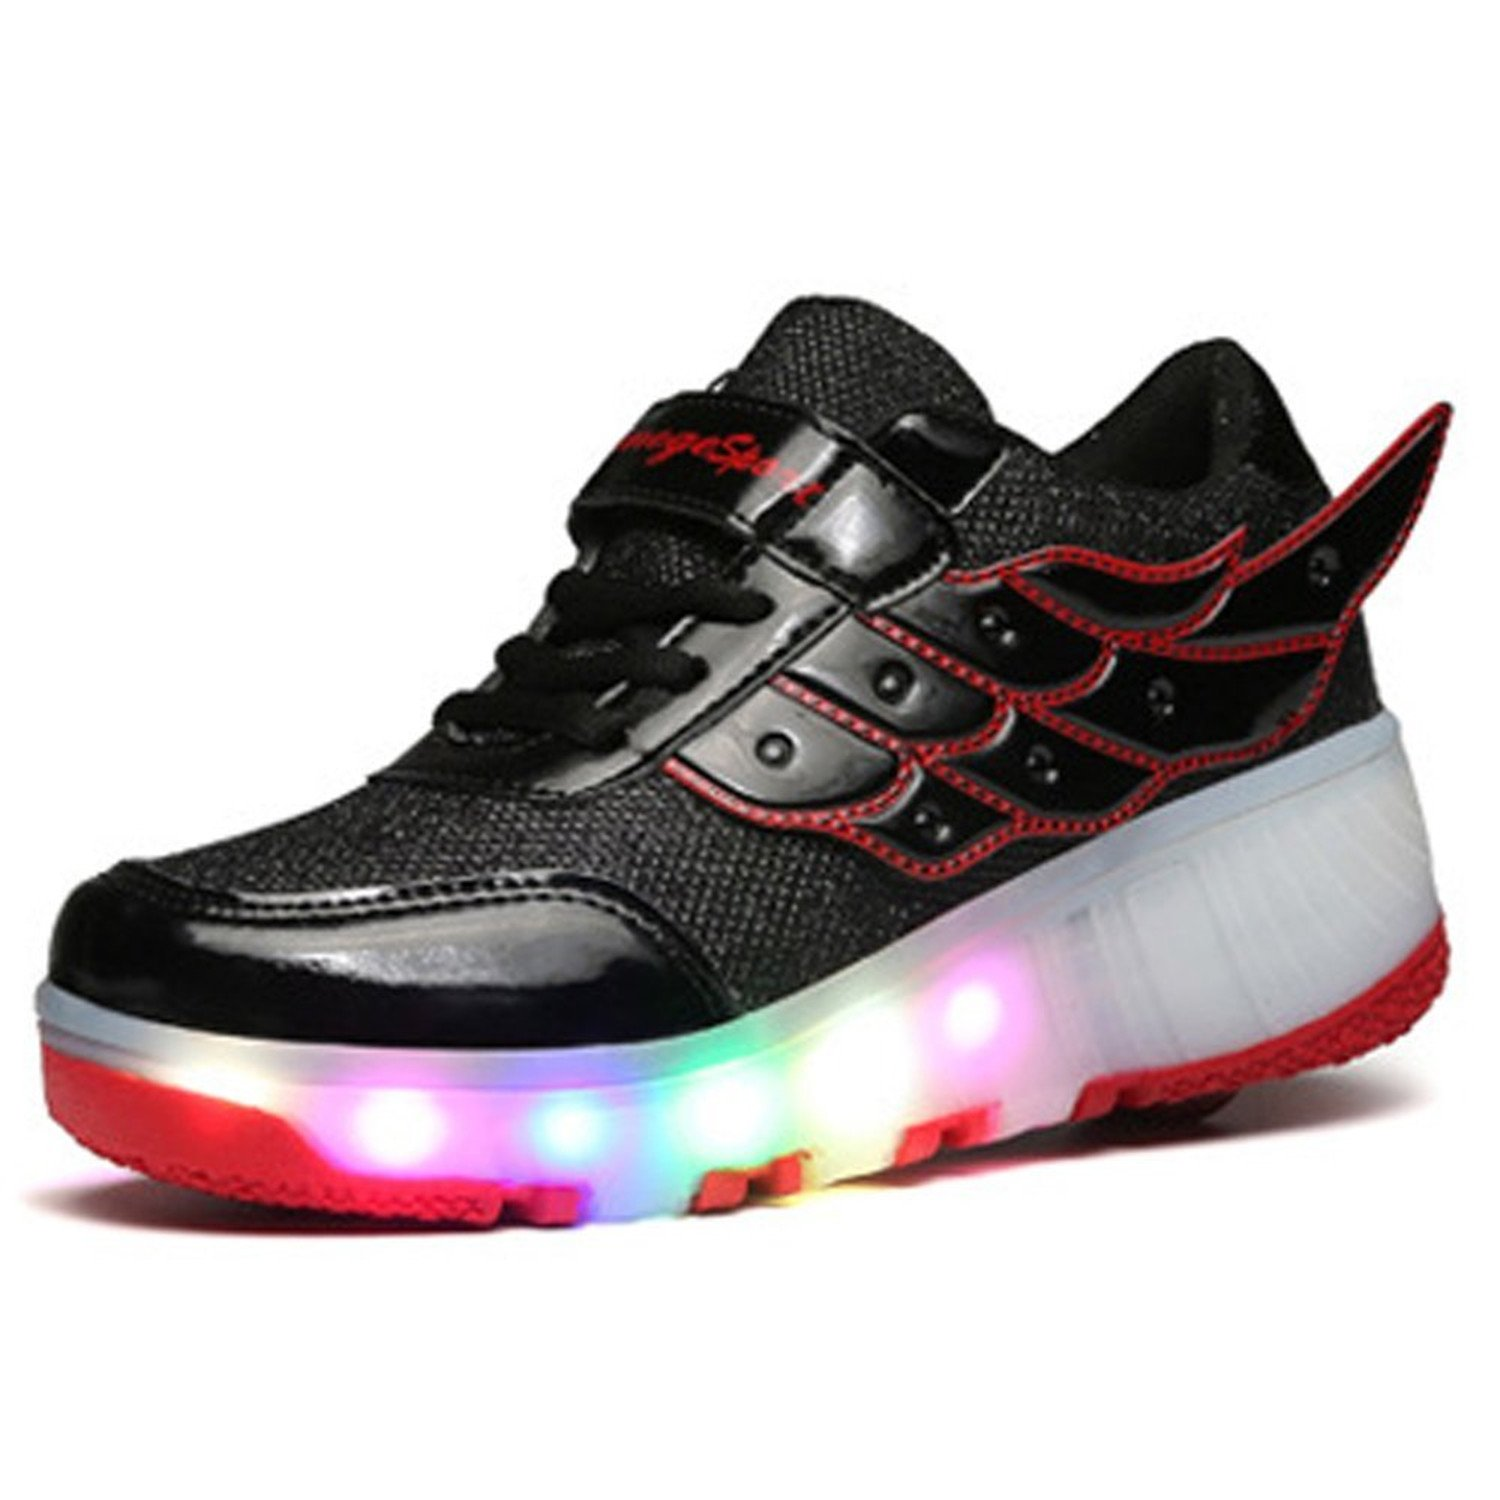 Yilaiyiqu/_1 Popular Kids fashion sneakers with single wheels LED roller skate Red4.5 M US Big Kid Comfortable